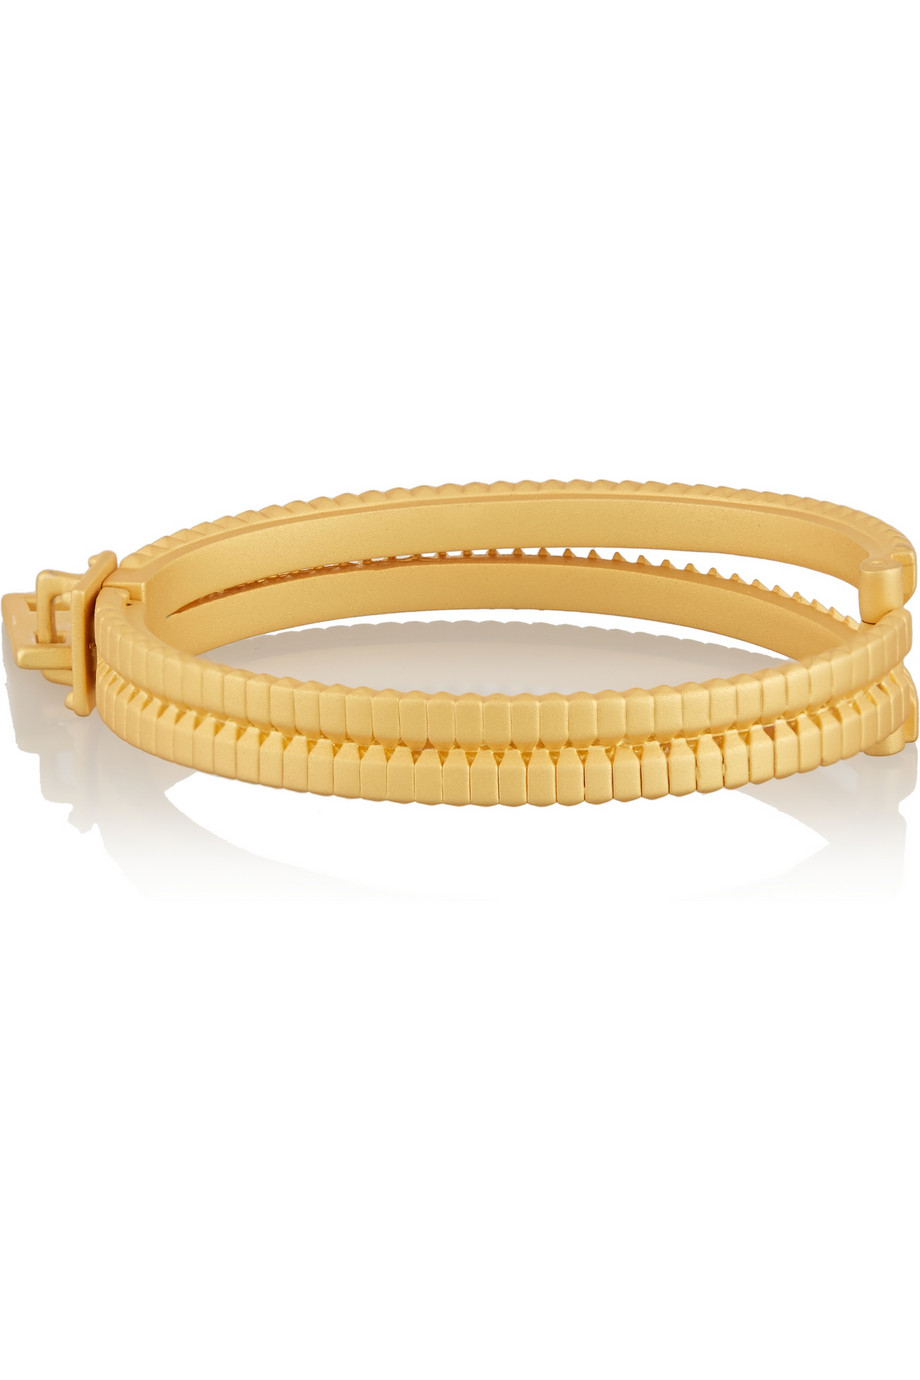 Eddie Borgo Zip matte gold-tone bracelet – 55% at THE OUTNET.COM